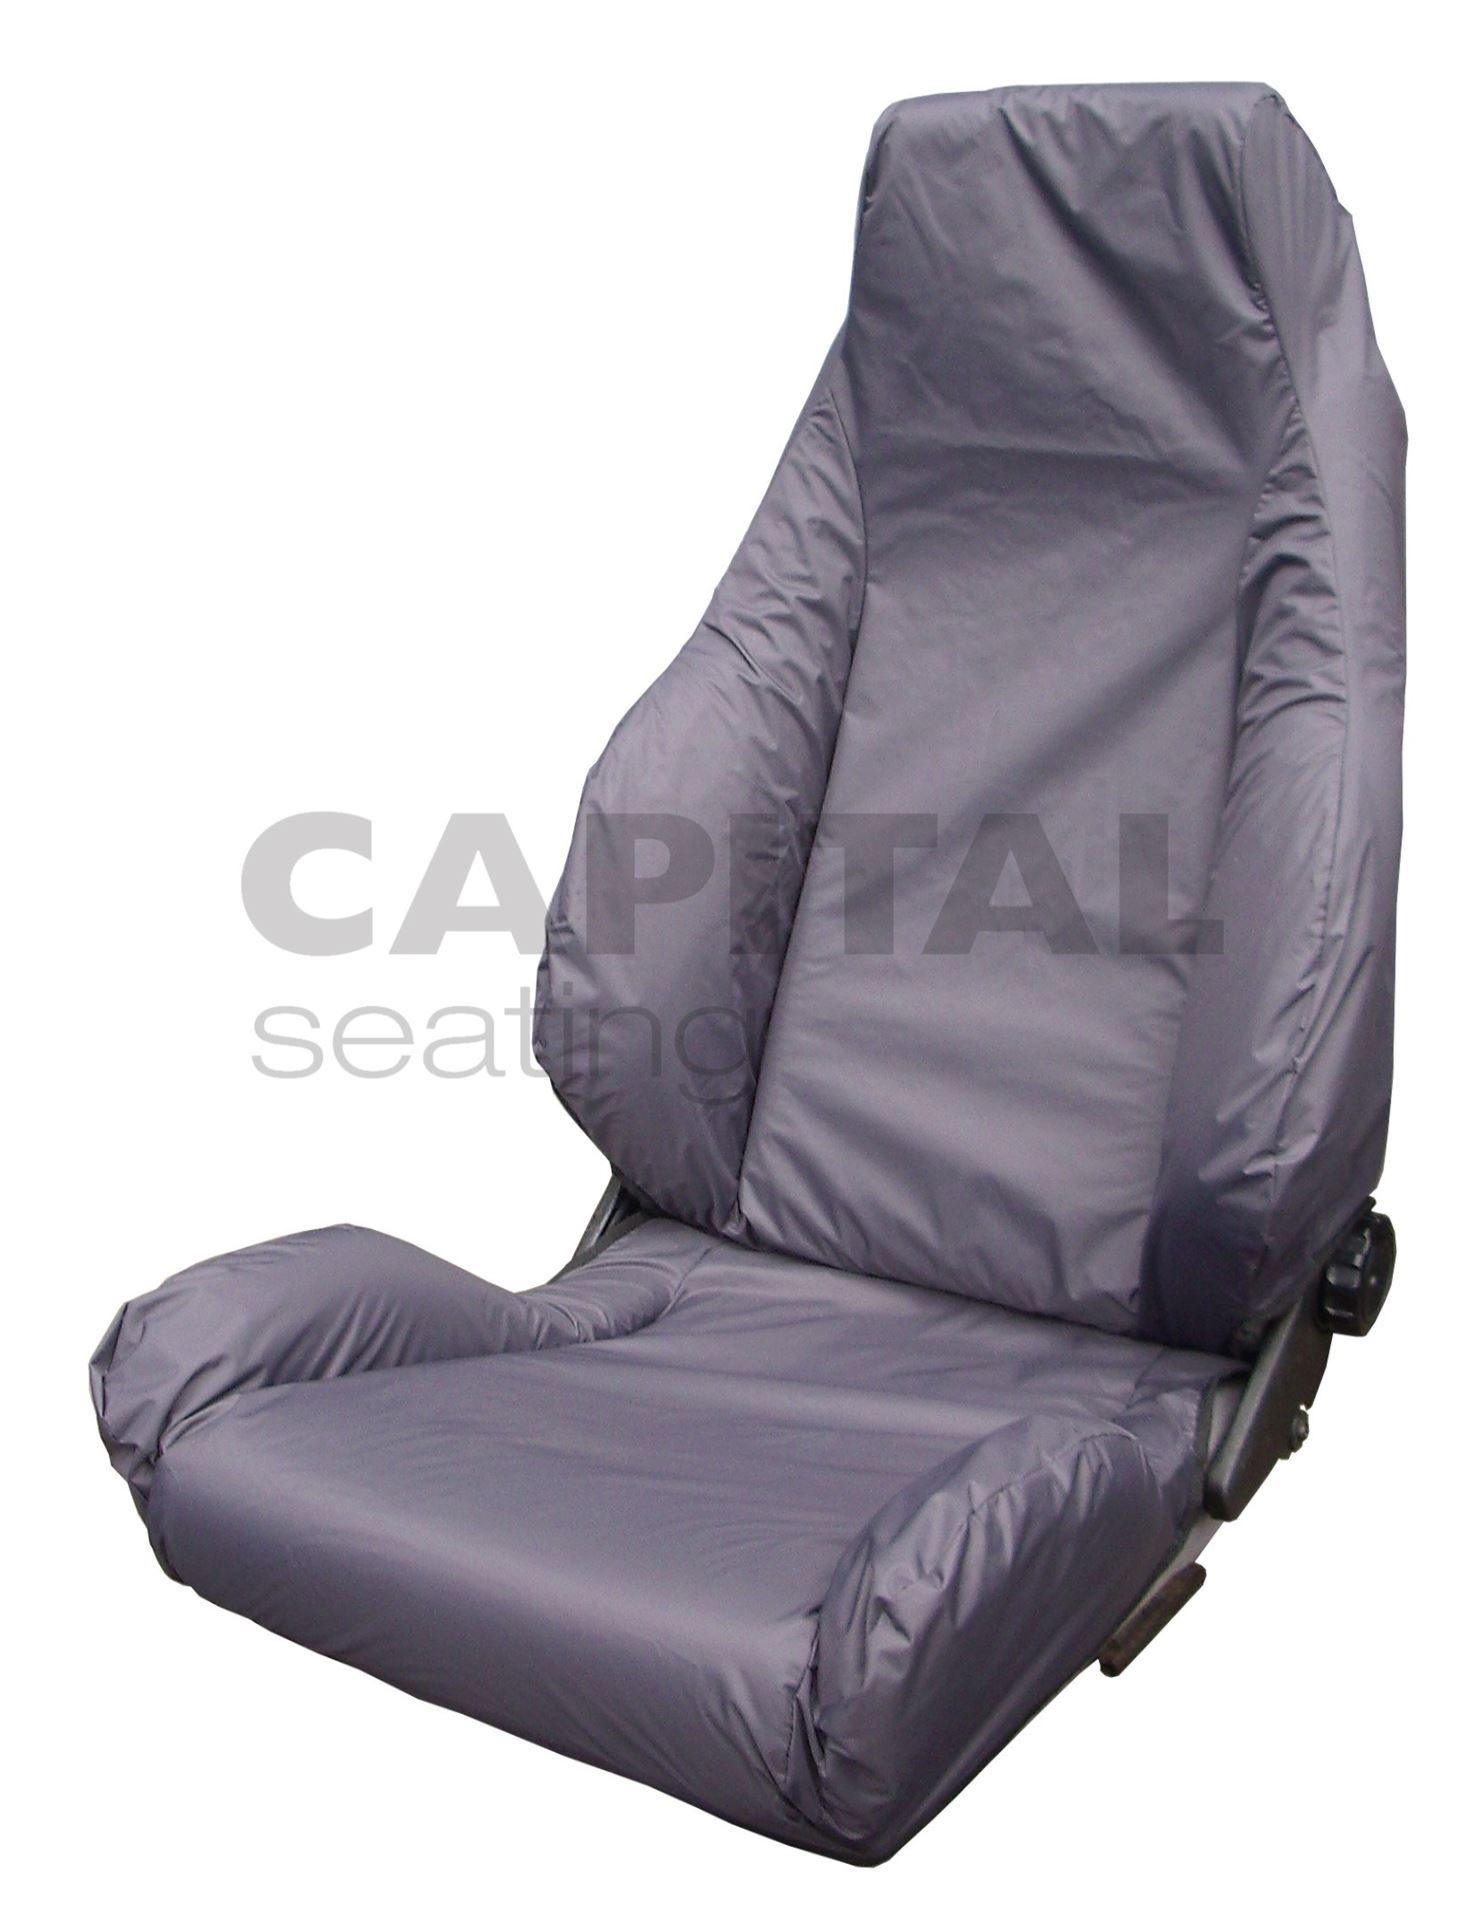 Capital Seating And Vision Seating Vision And Accessories For - Alfa romeo seat covers